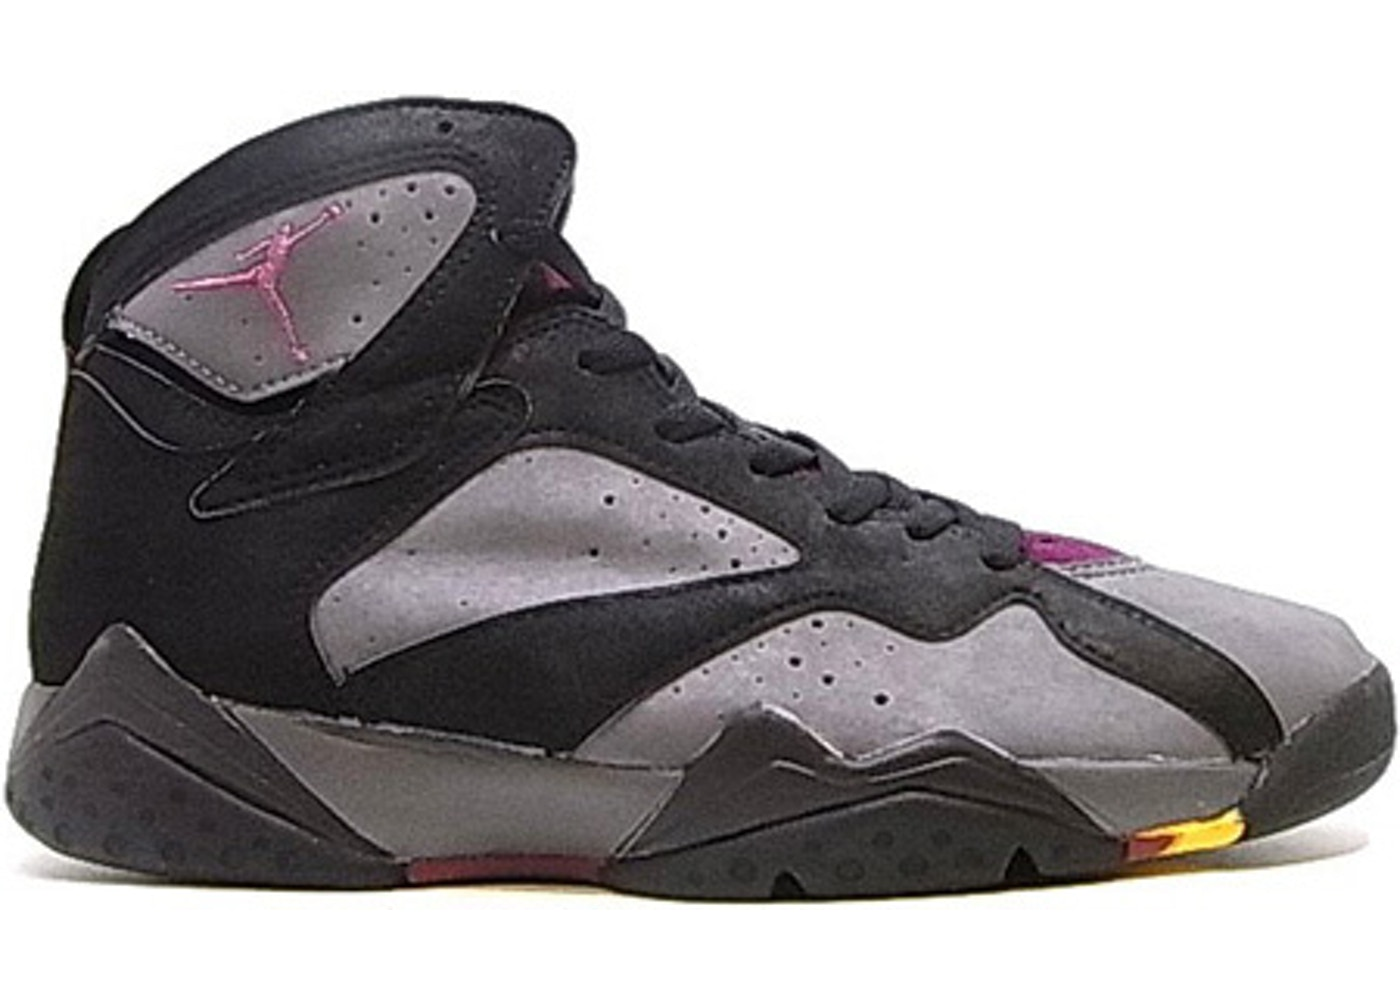 new style cd7f8 4cff9 Air Jordan 7 Shoes - Average Sale Price